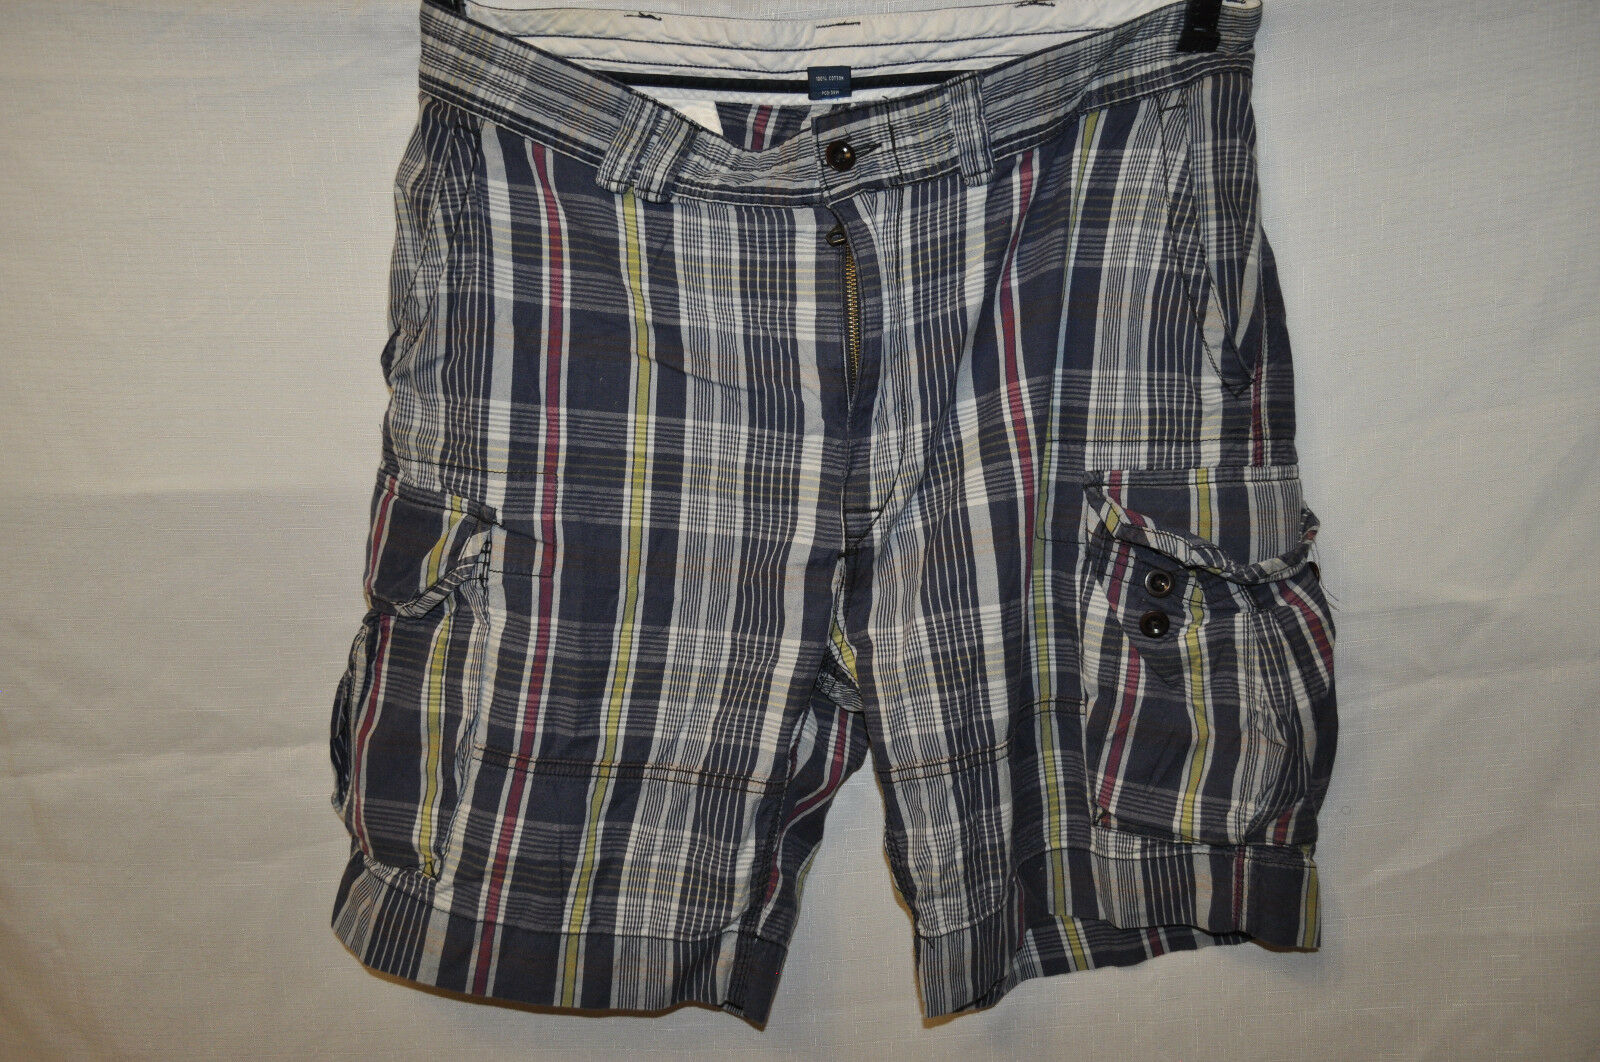 Polo Ralph Lauren Shorts Mens Stripes Shorts Size 38 Multi colord